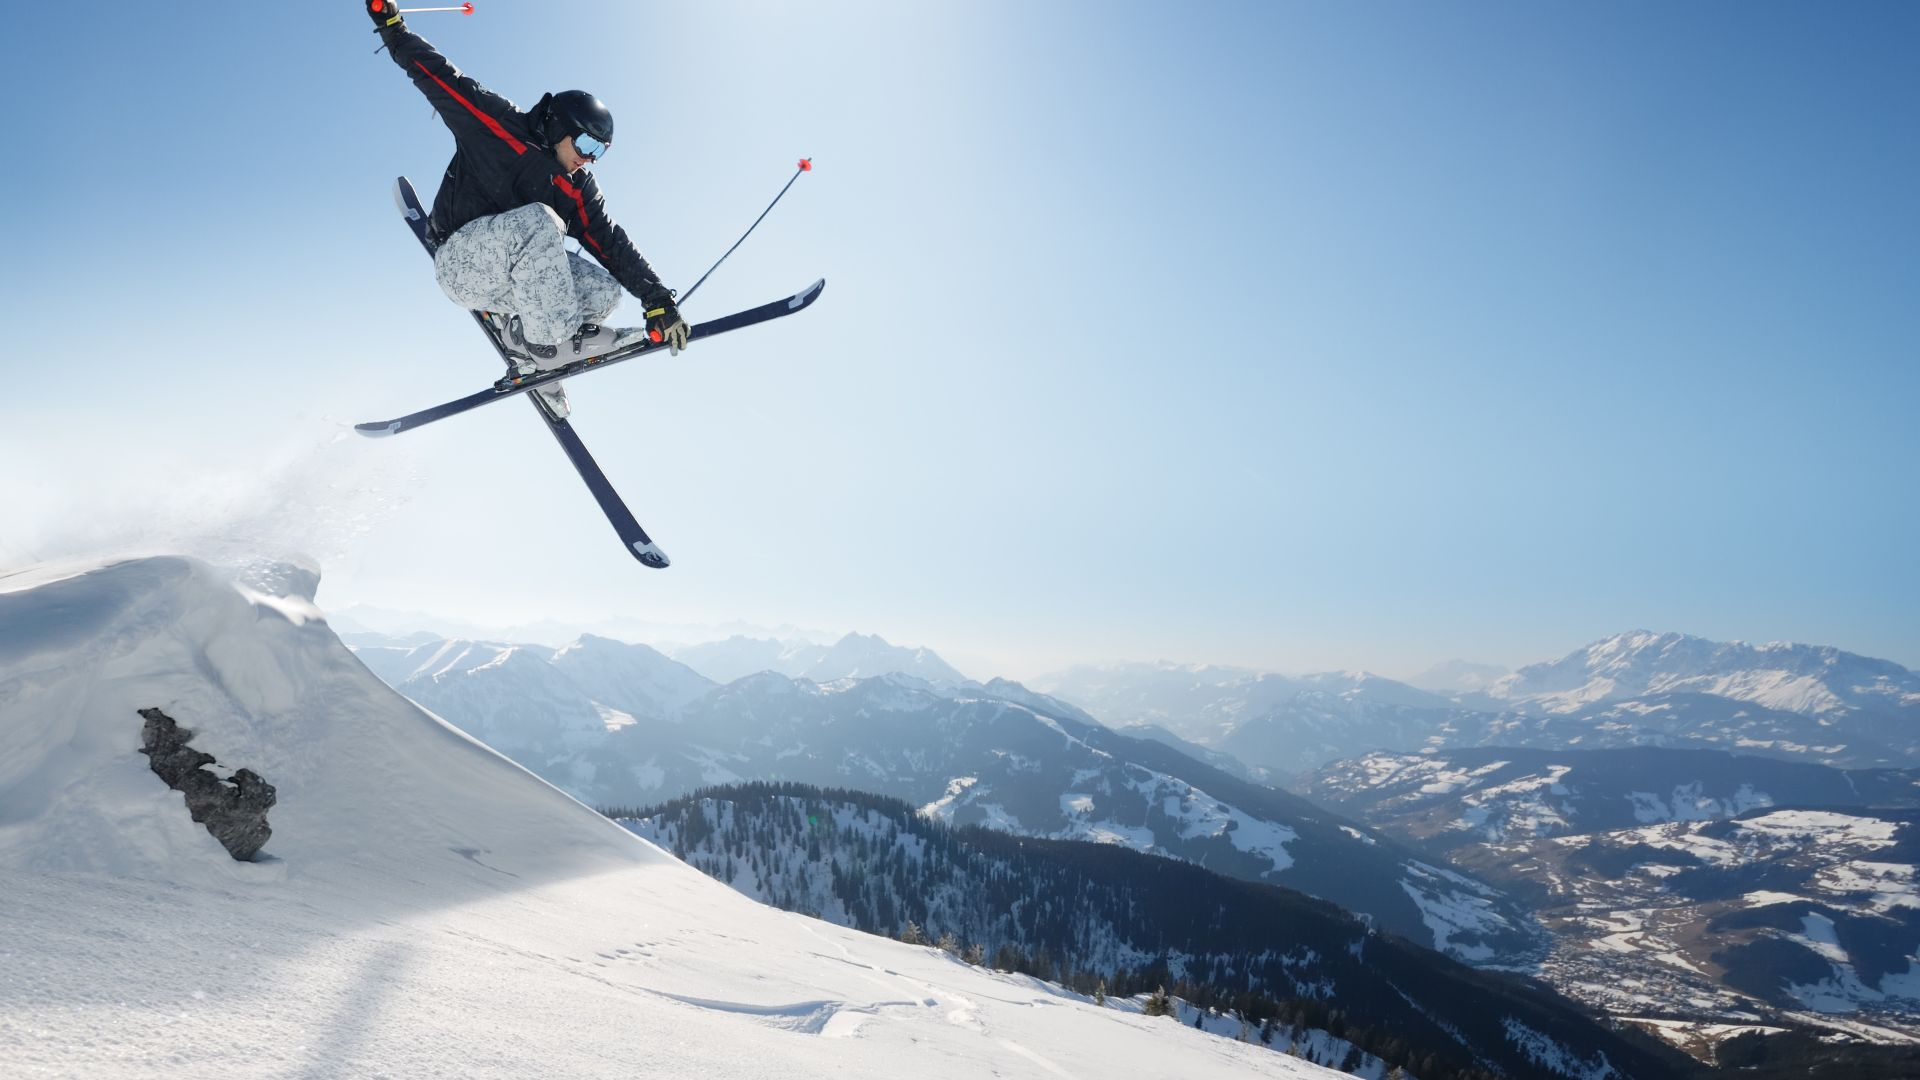 the characteristics of snowboarding as a sport Snowboarding is a recreational activity and olympic and paralympic sport that involves descending a snow-covered slope while standing on a snowboard attached to a rider's feet the development of snowboarding was inspired by.